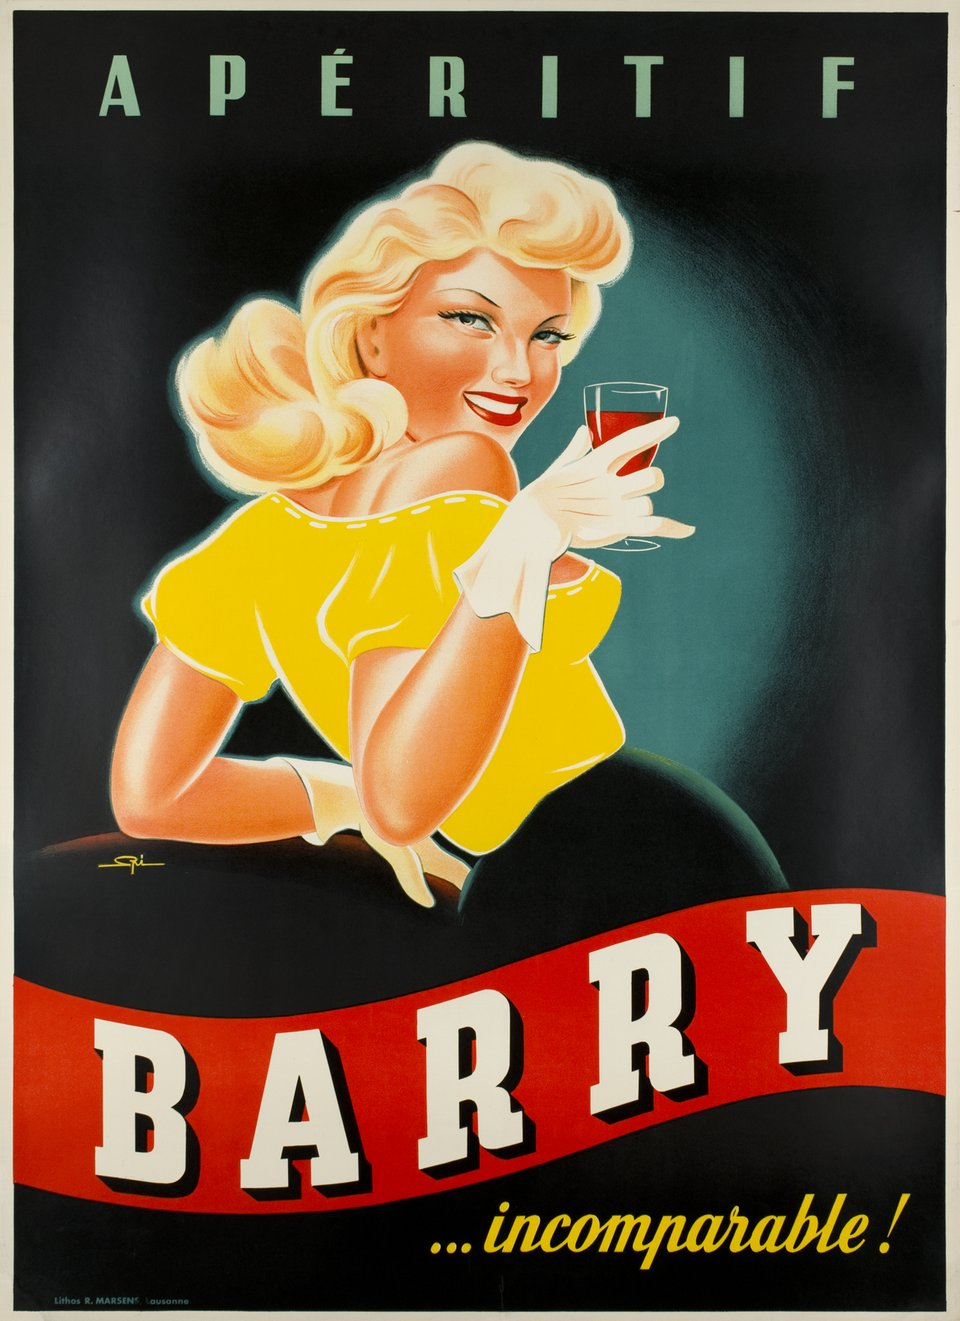 Barry, Apéritif incomparable – Affiche ancienne – Walther SPINNER – 1950